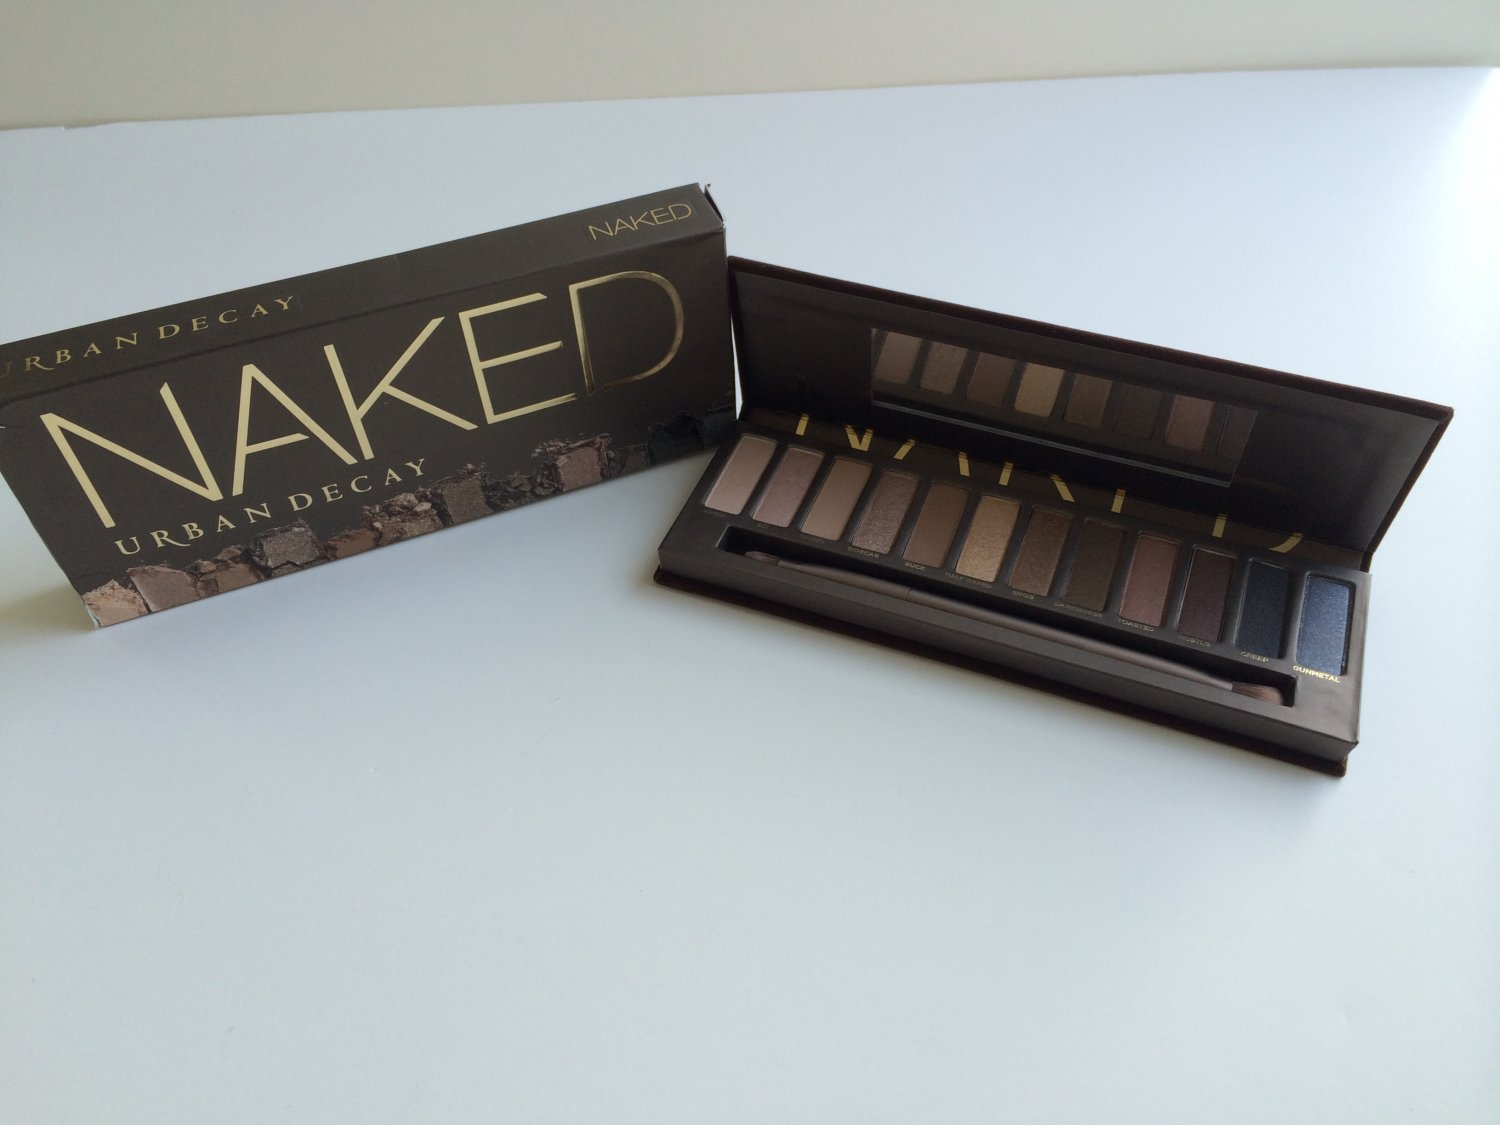 SALE! Urban Decay Naked Palette with Shadow Karma Brush and Primer Potion (BNIB)